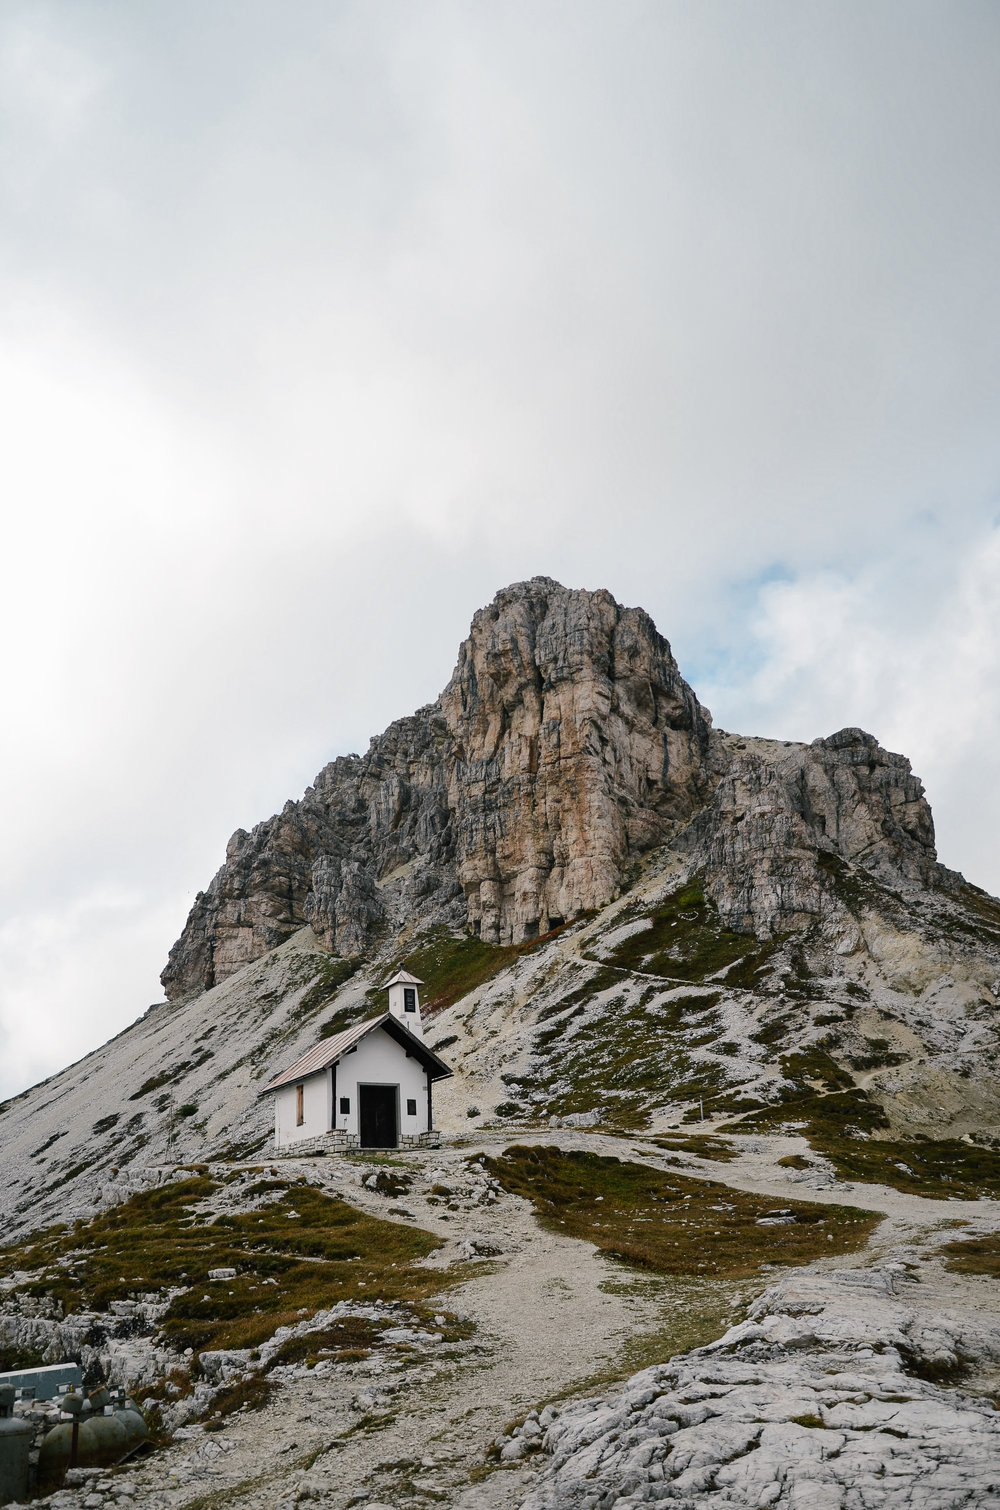 dolomites-why-the-italian-alps-should-be-your-next-mountain-adventure- travel-blog-15.jpg